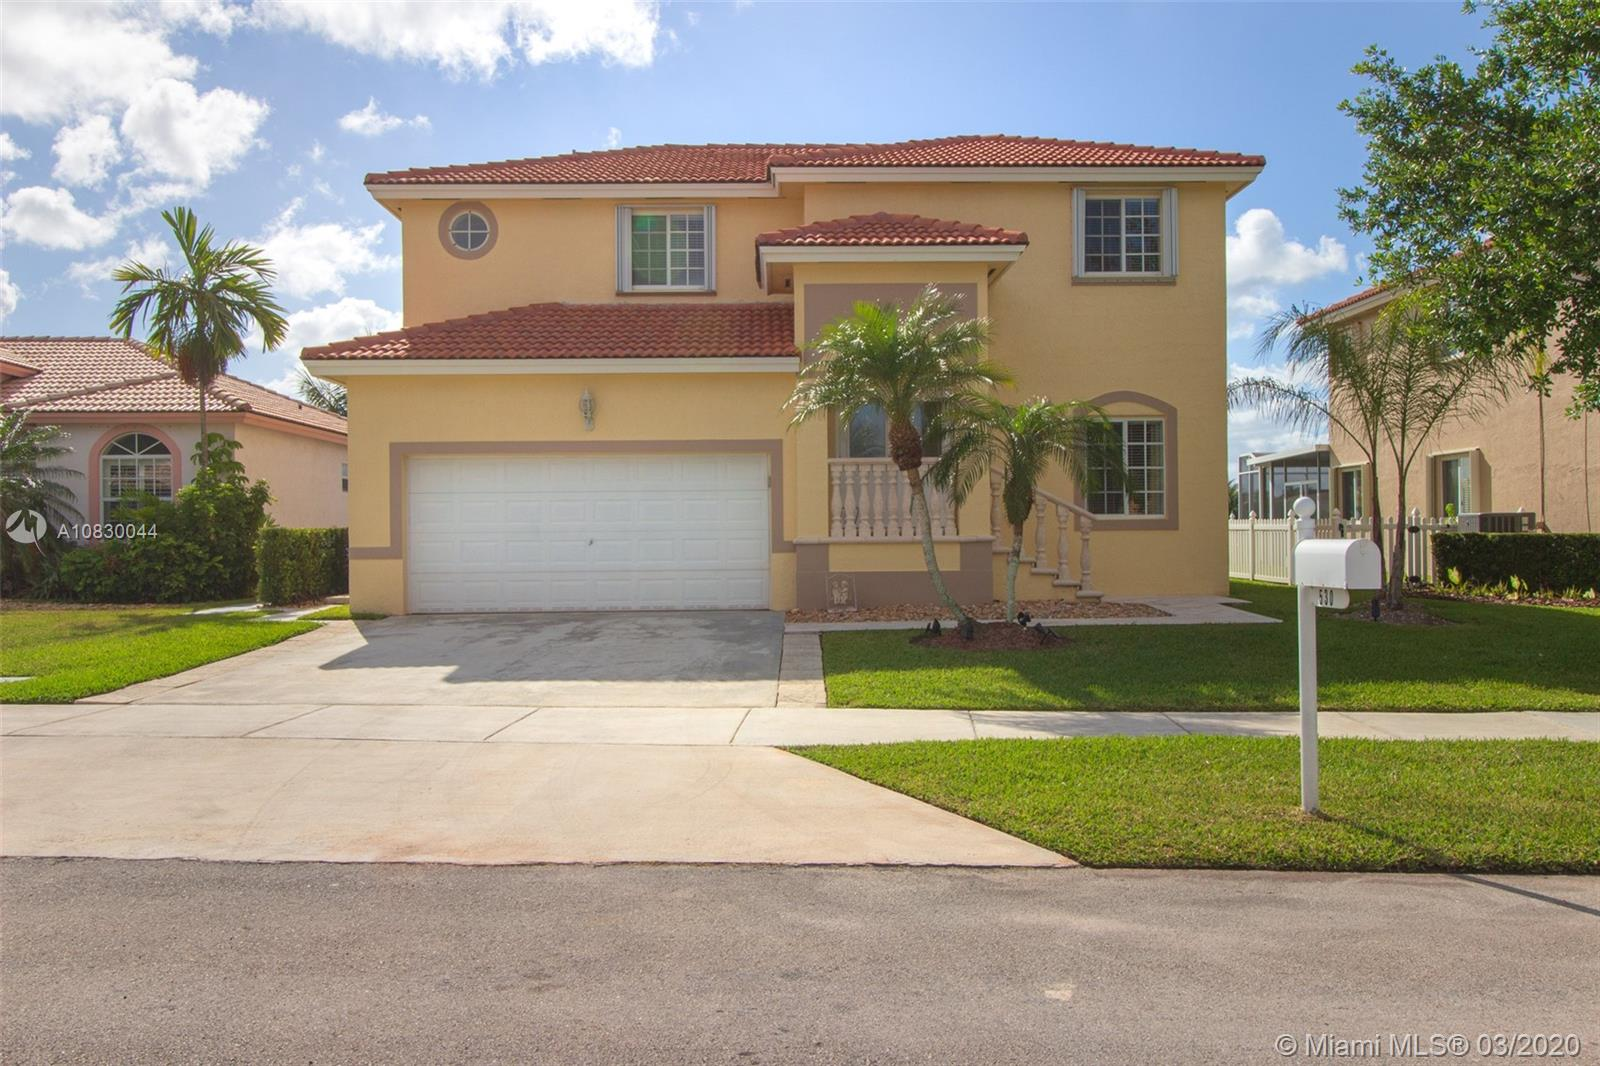 530 SE 30th Dr, Homestead, FL 33033 - Homestead, FL real estate listing